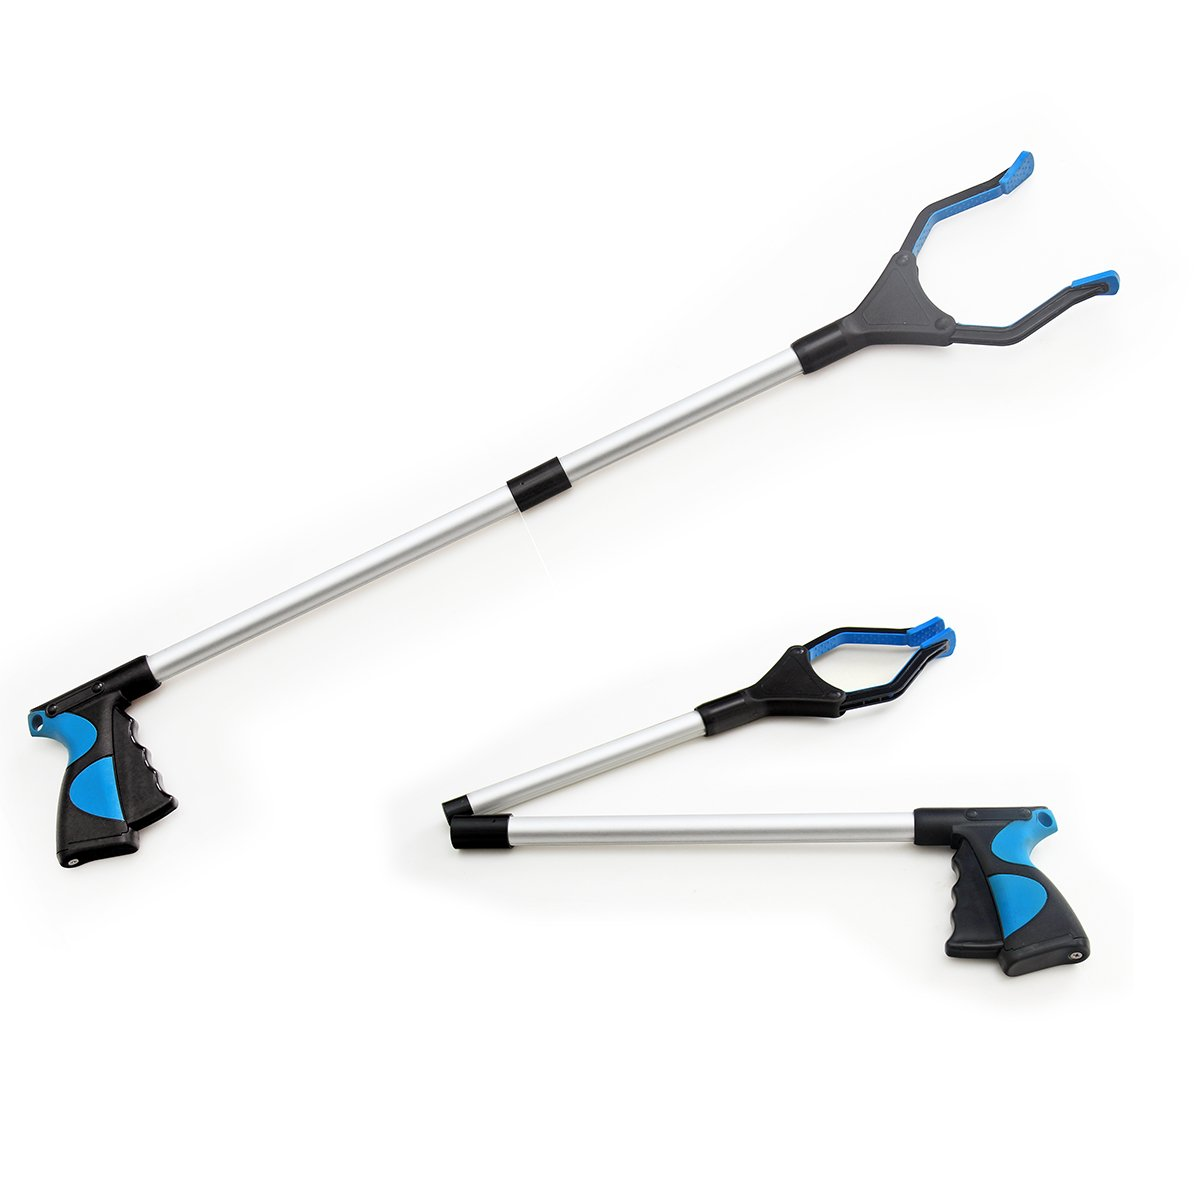 TBBSC Grabber Tool, Foldable Reacher Grabber Pick Up Tool - Grabber Suction 32'' Long Heavy Duty Mobility Aid by TBBSC